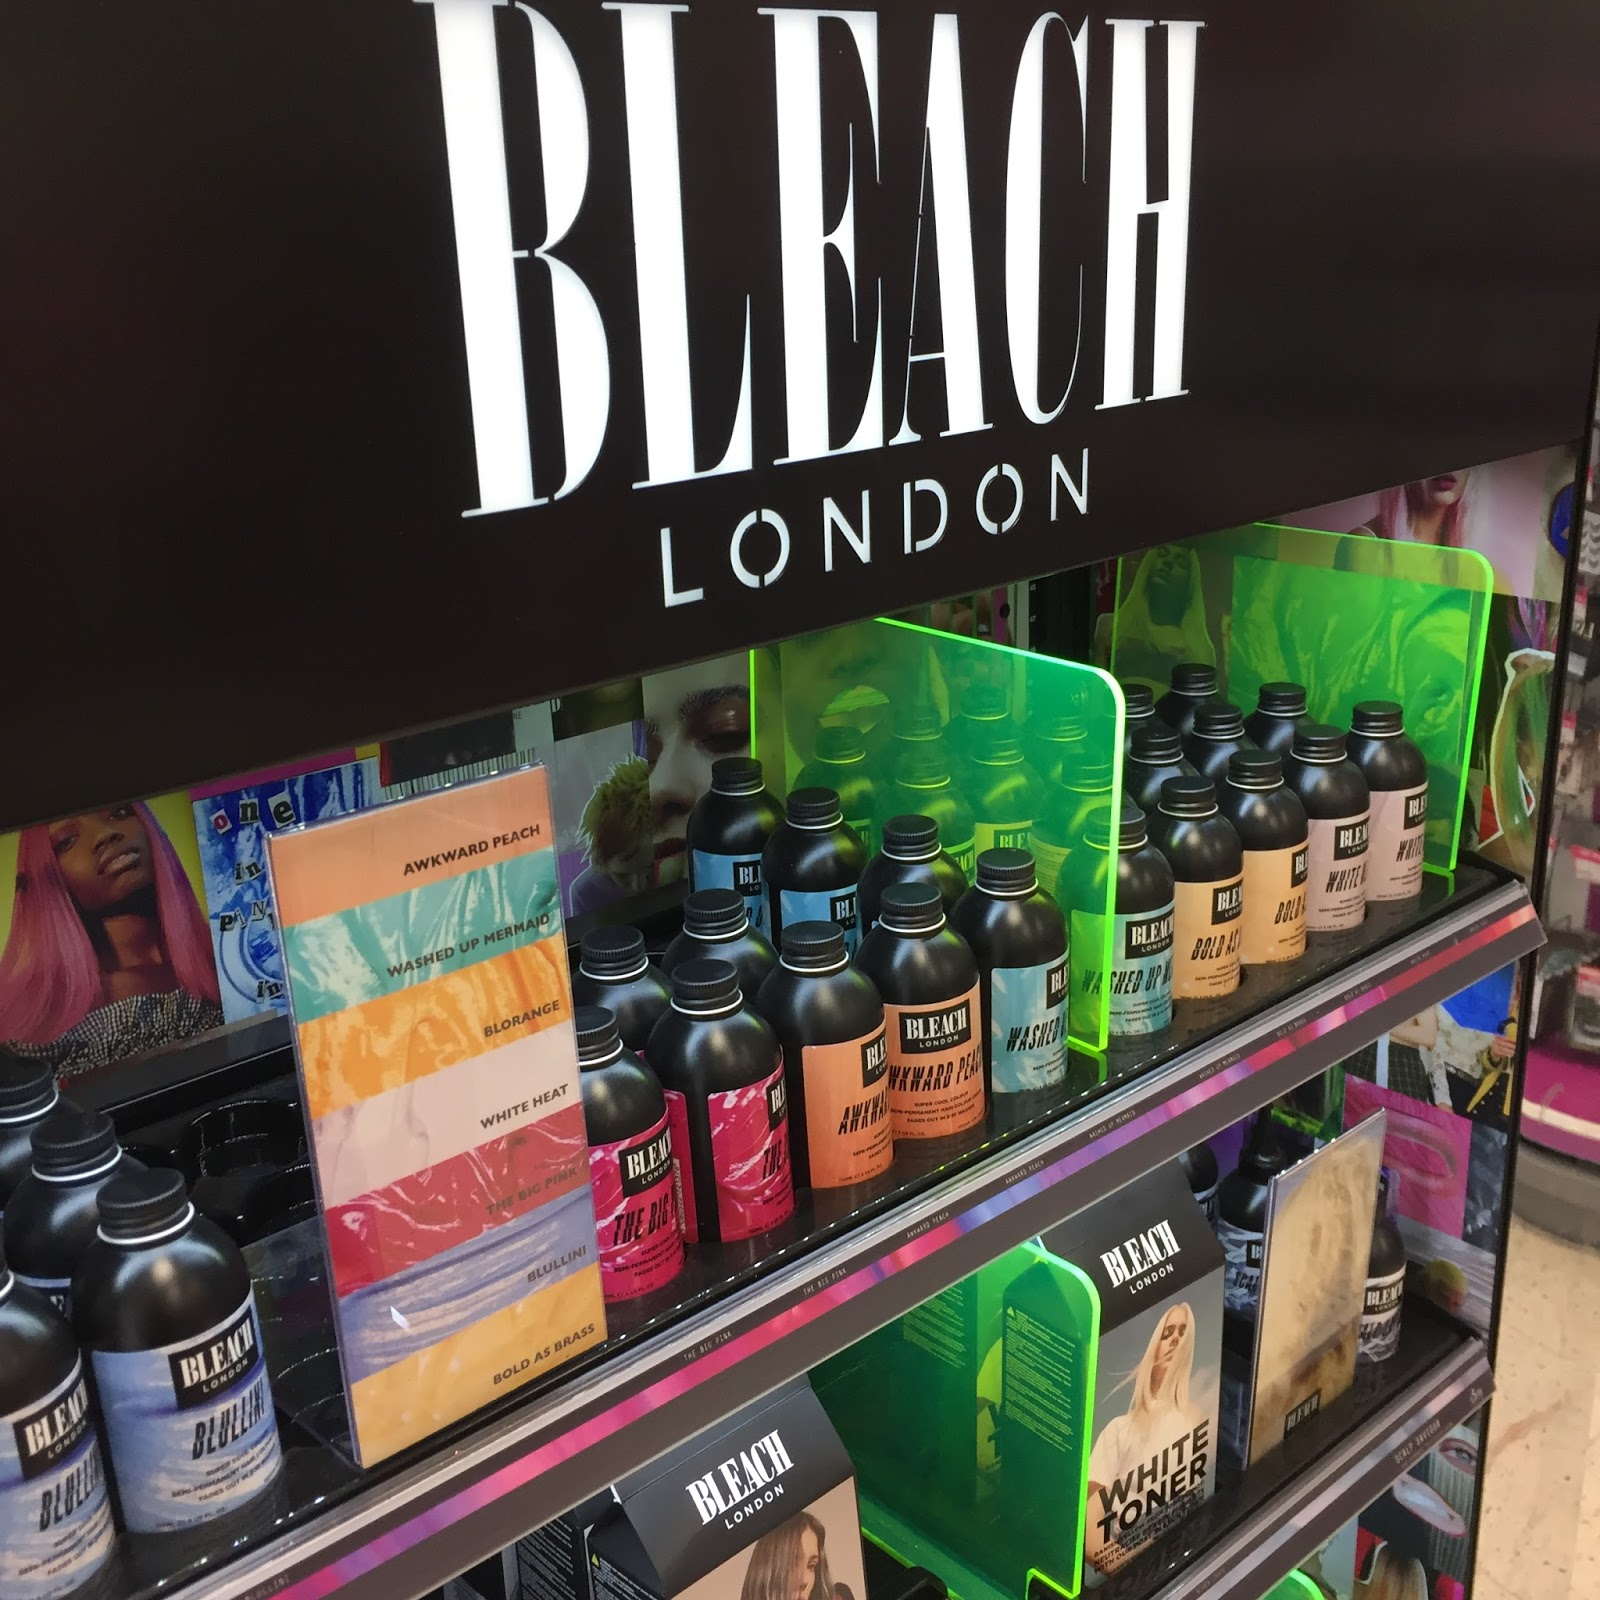 Bleach London products in Superdrug